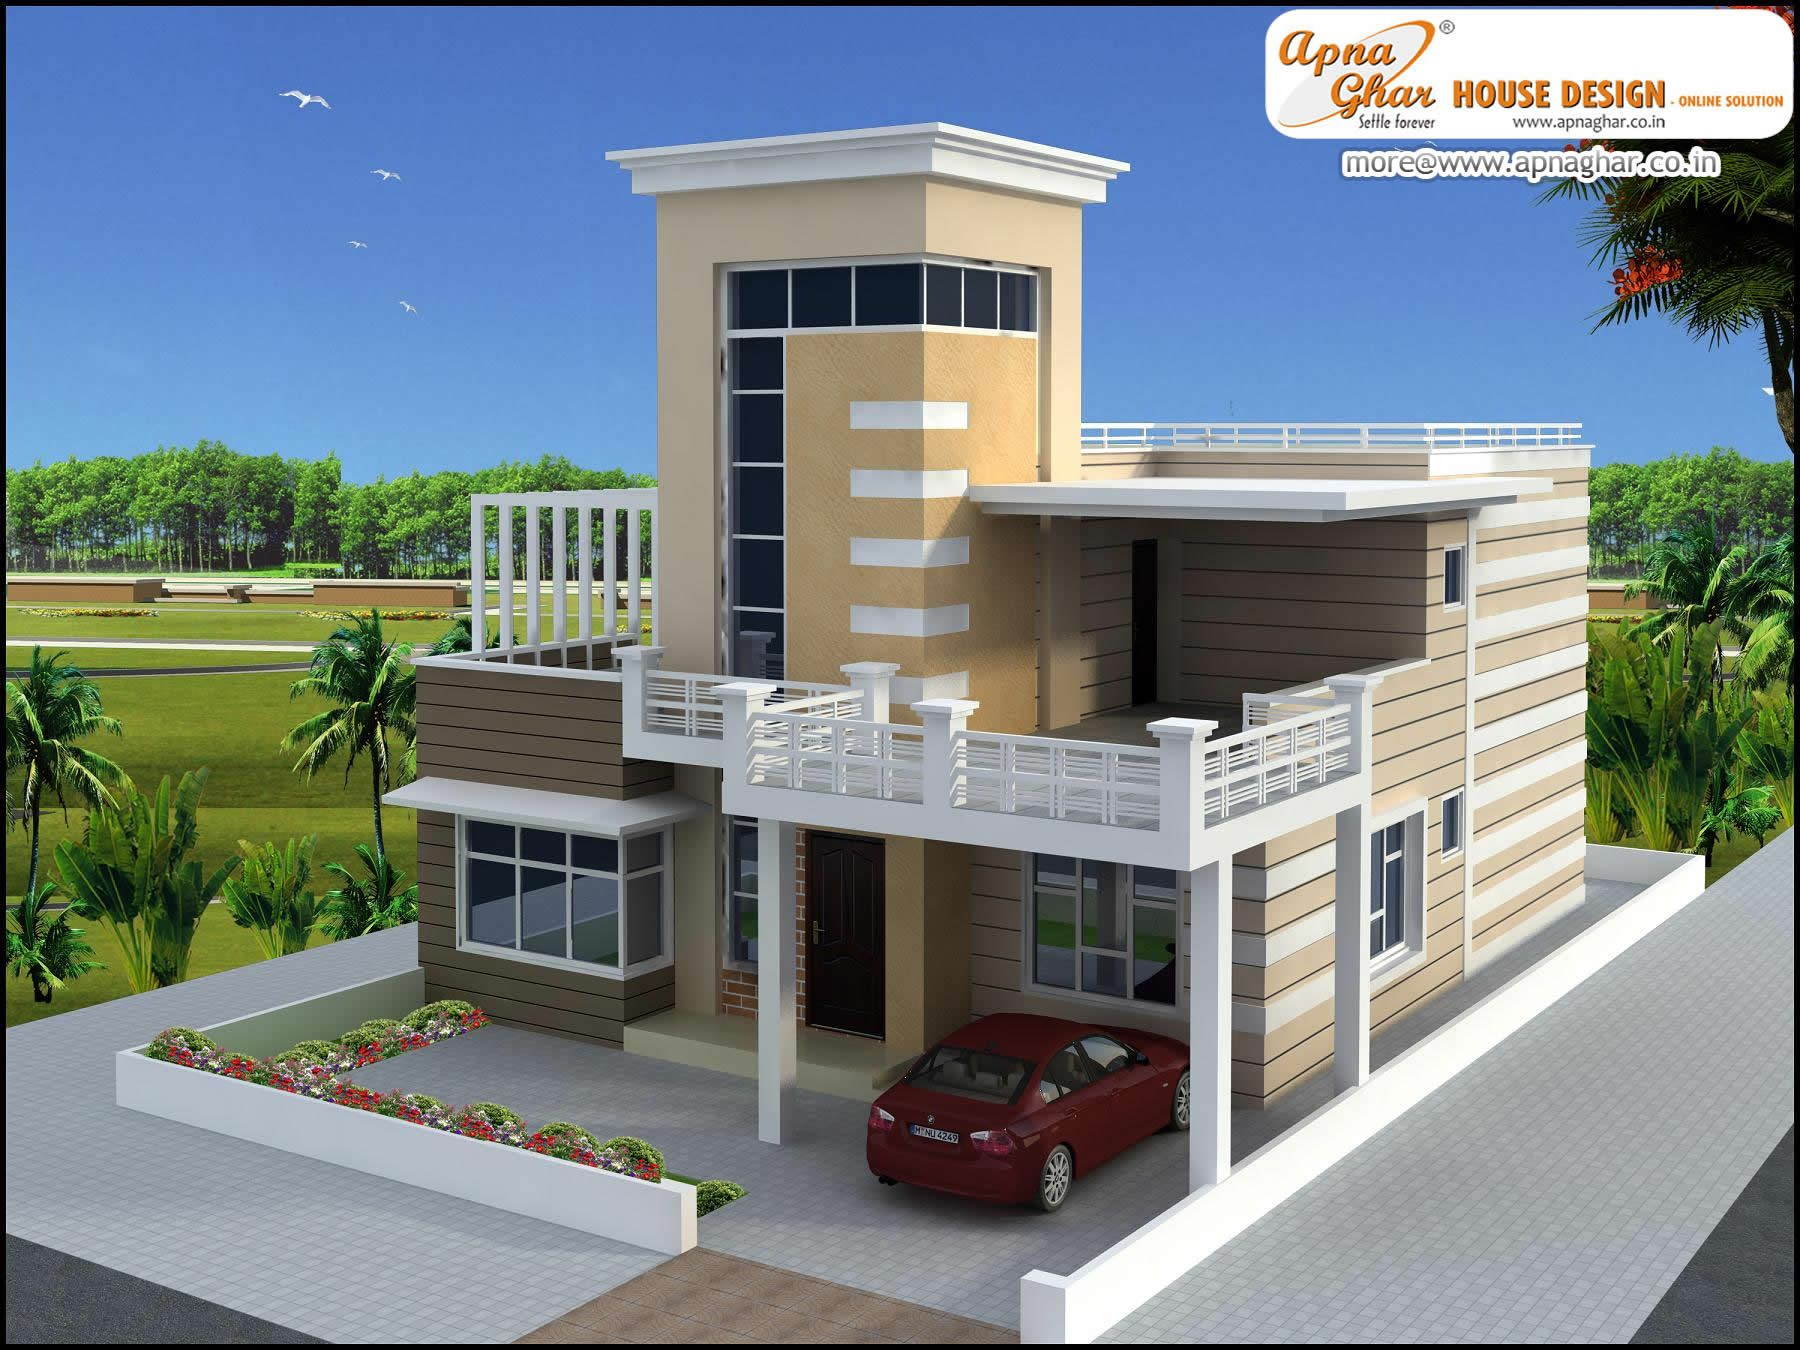 Luxury Duplex 2 Floors House Design Area 252m2 21m X 12m Click On This Link Http Www Apnaghar Co In Hous Duplex House Design House Design House Plans